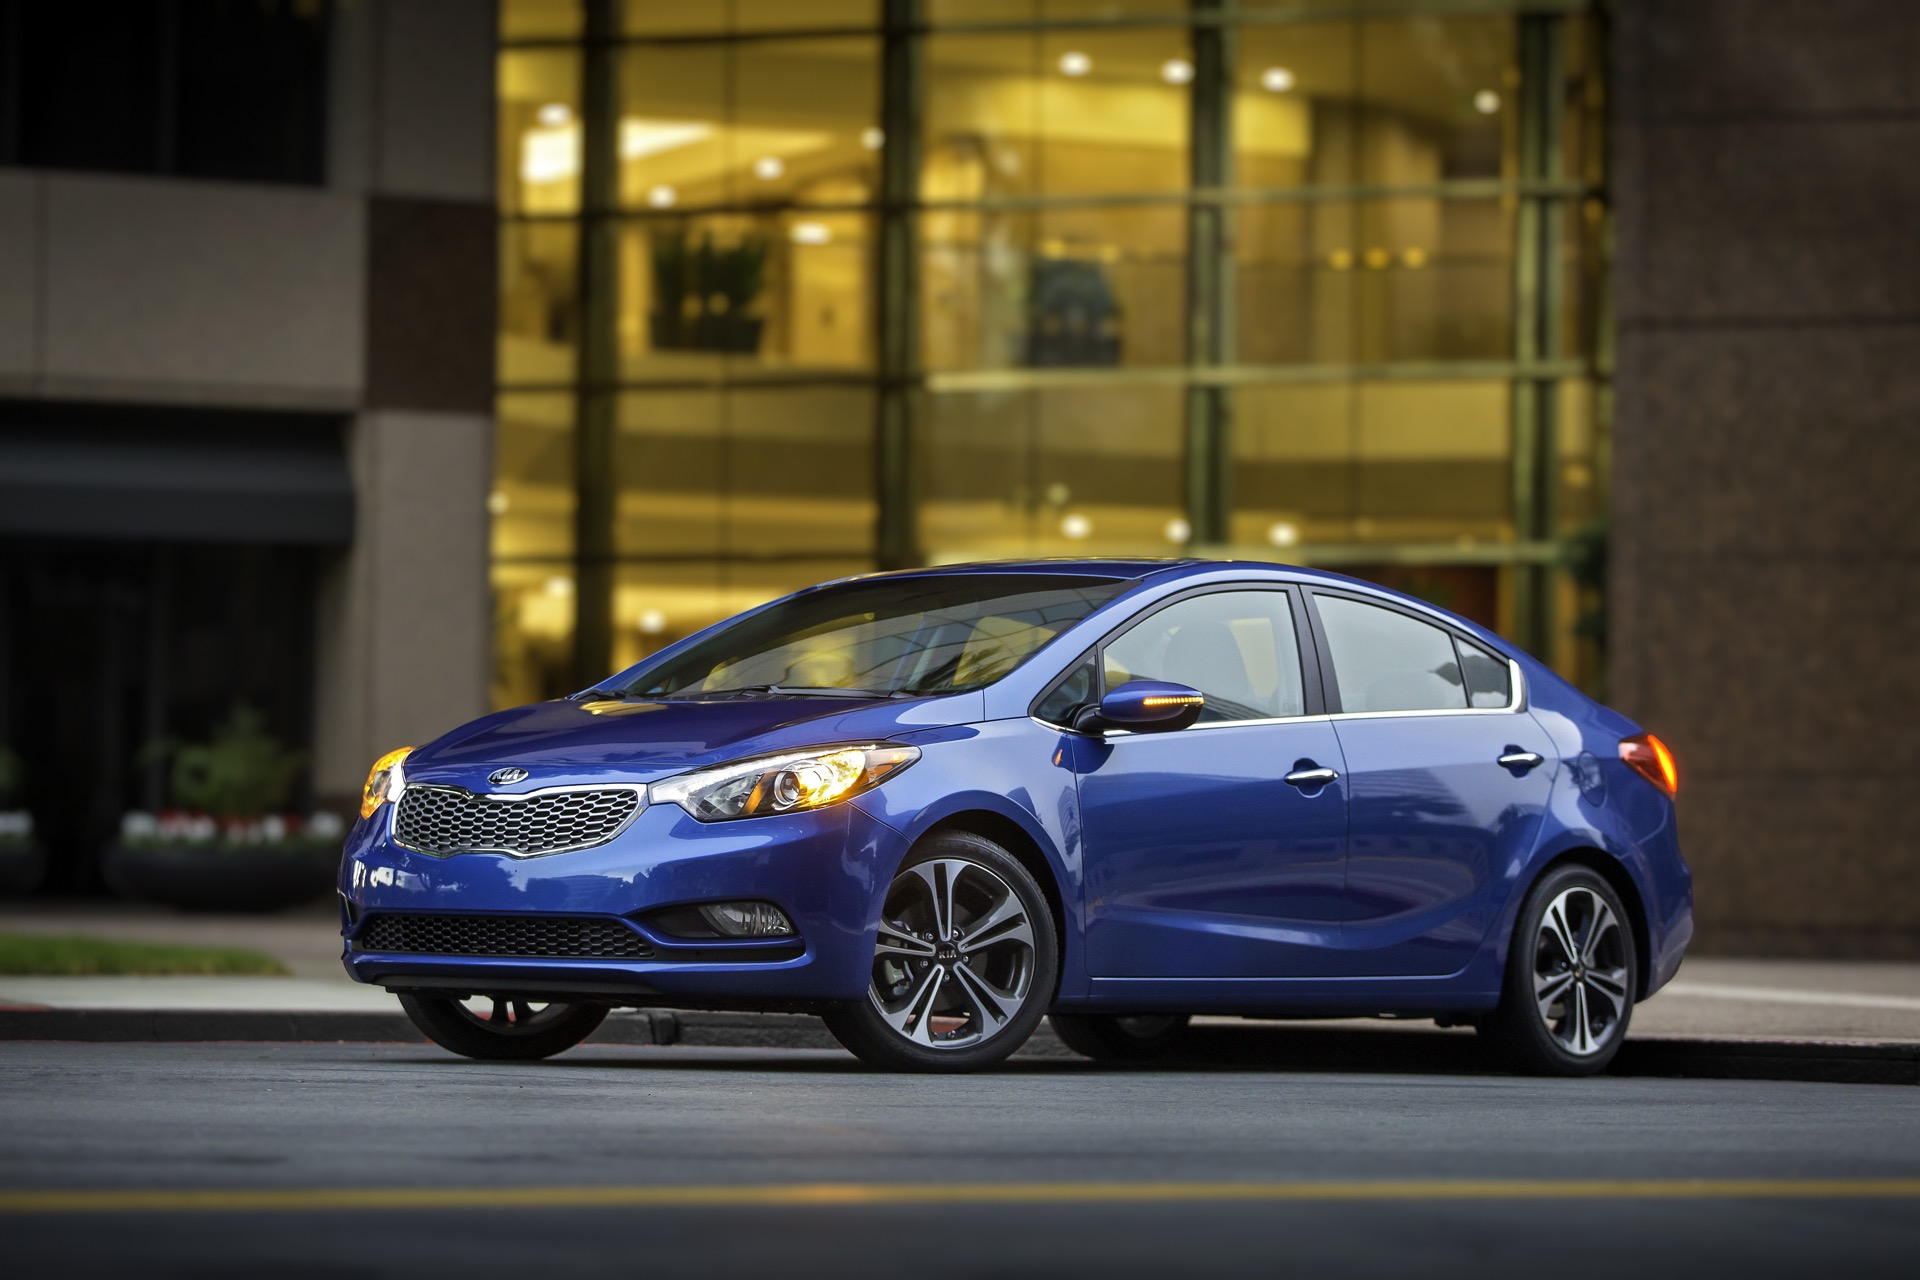 2016 Kia Forte Review, Ratings, Specs, Prices, and Photos ...